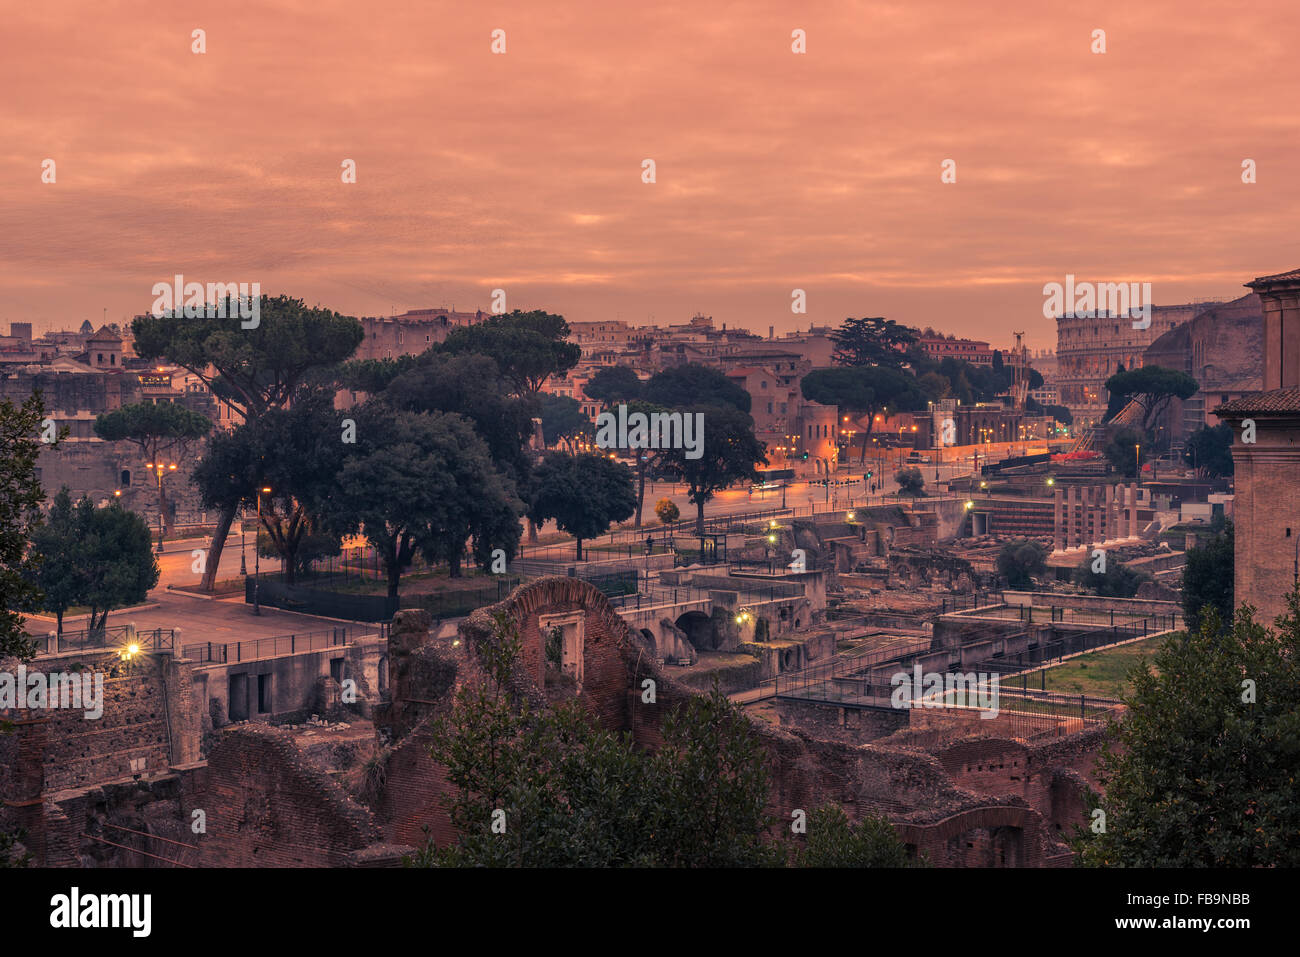 Rome, Italy: The Roman Forum in the sunrise - Stock Image